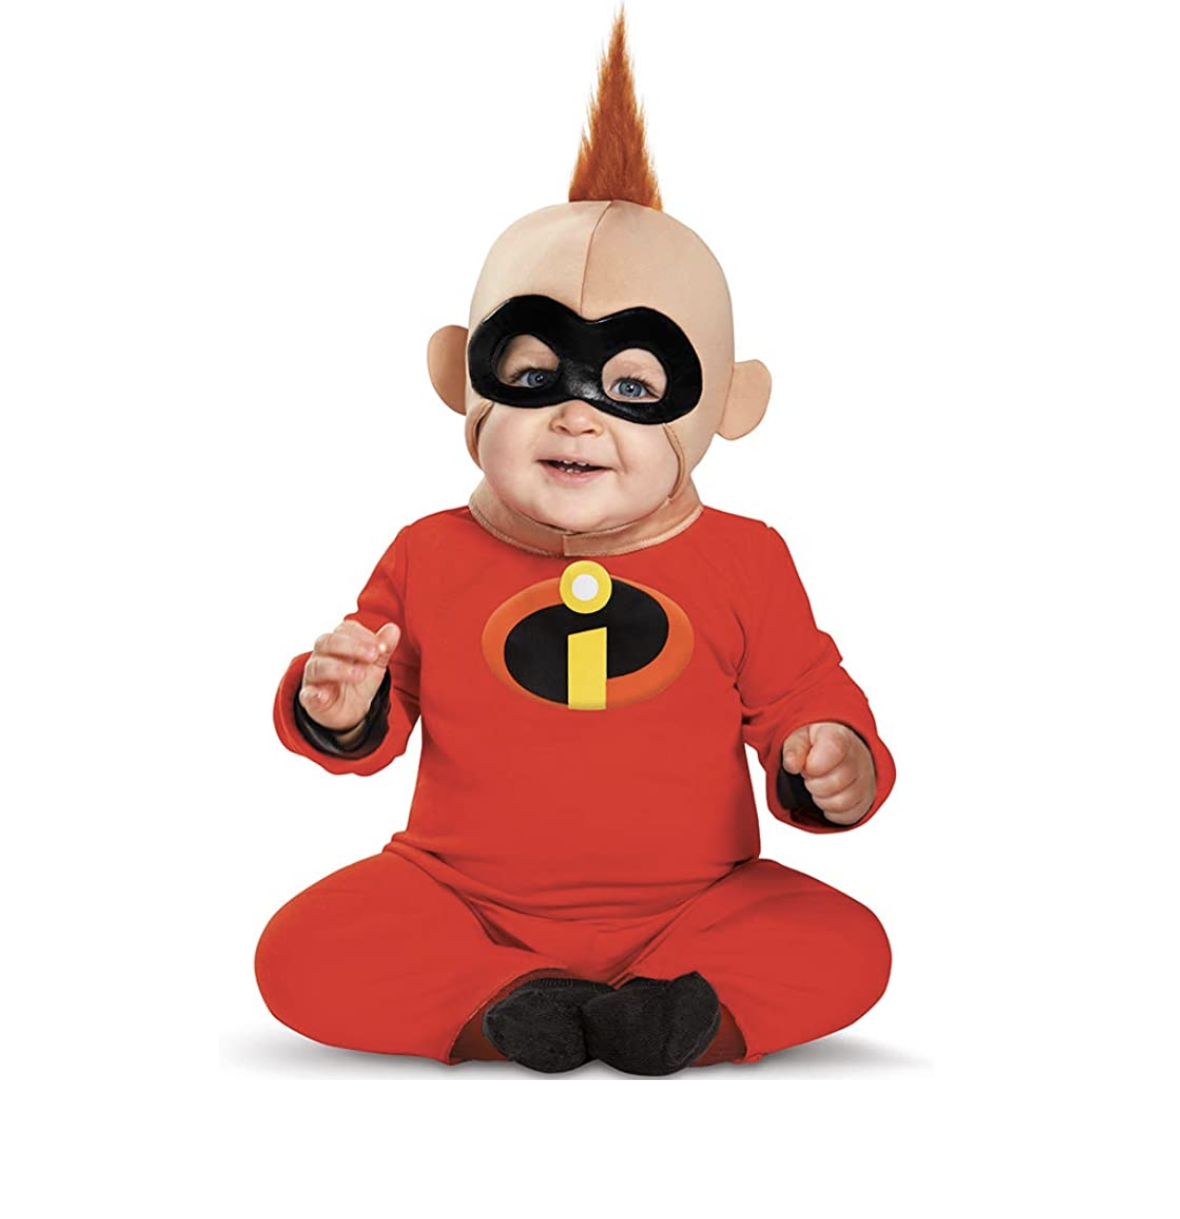 Baby in a Baby Jack Jack costume